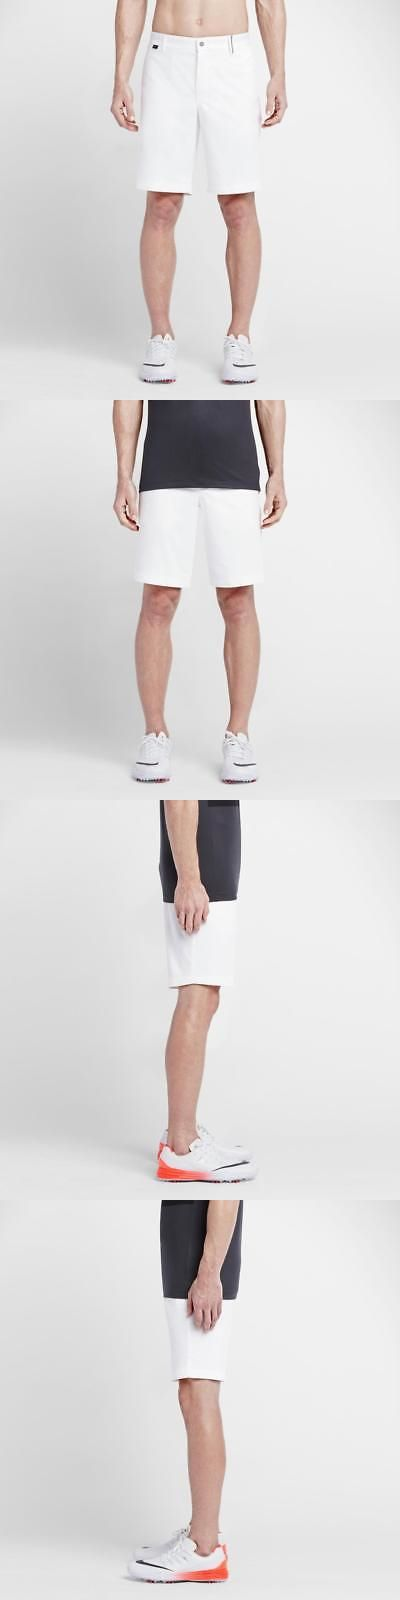 Shorts 181139: New $80 Nike Golf Men S Modern Fit Washed Shorts 10 White 725710-100 Sz 32 -> BUY IT NOW ONLY: $35.99 on eBay!